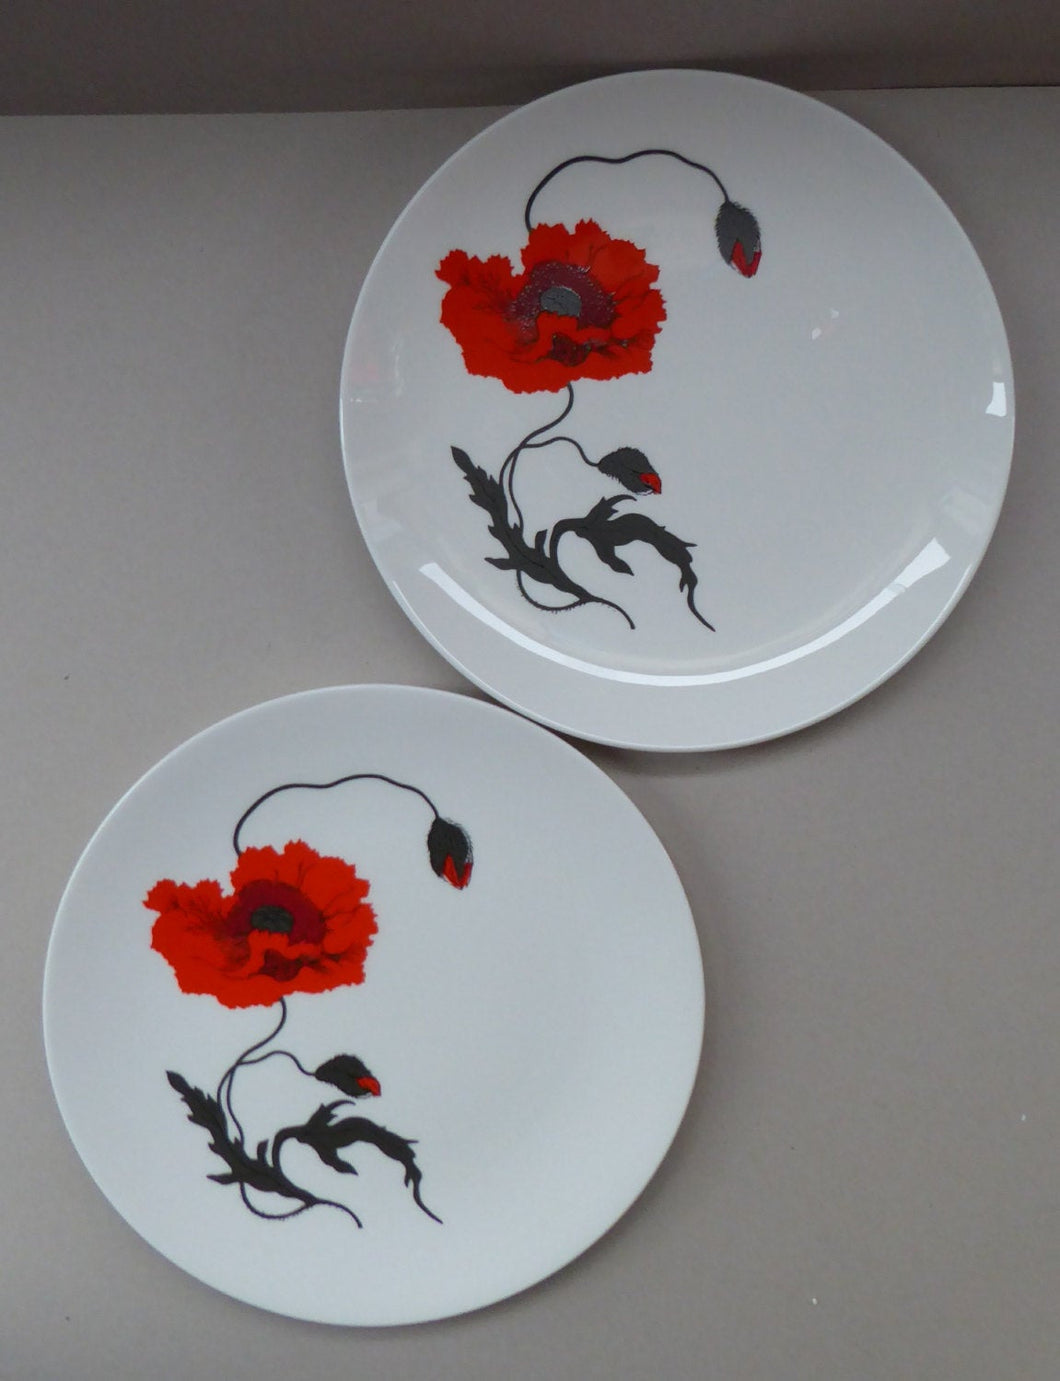 SUSIE COOPER for WEDGWOOD. 1971 Cornpoppy Design. Stylish Floral Bone China Dessert Plates - 9 inches